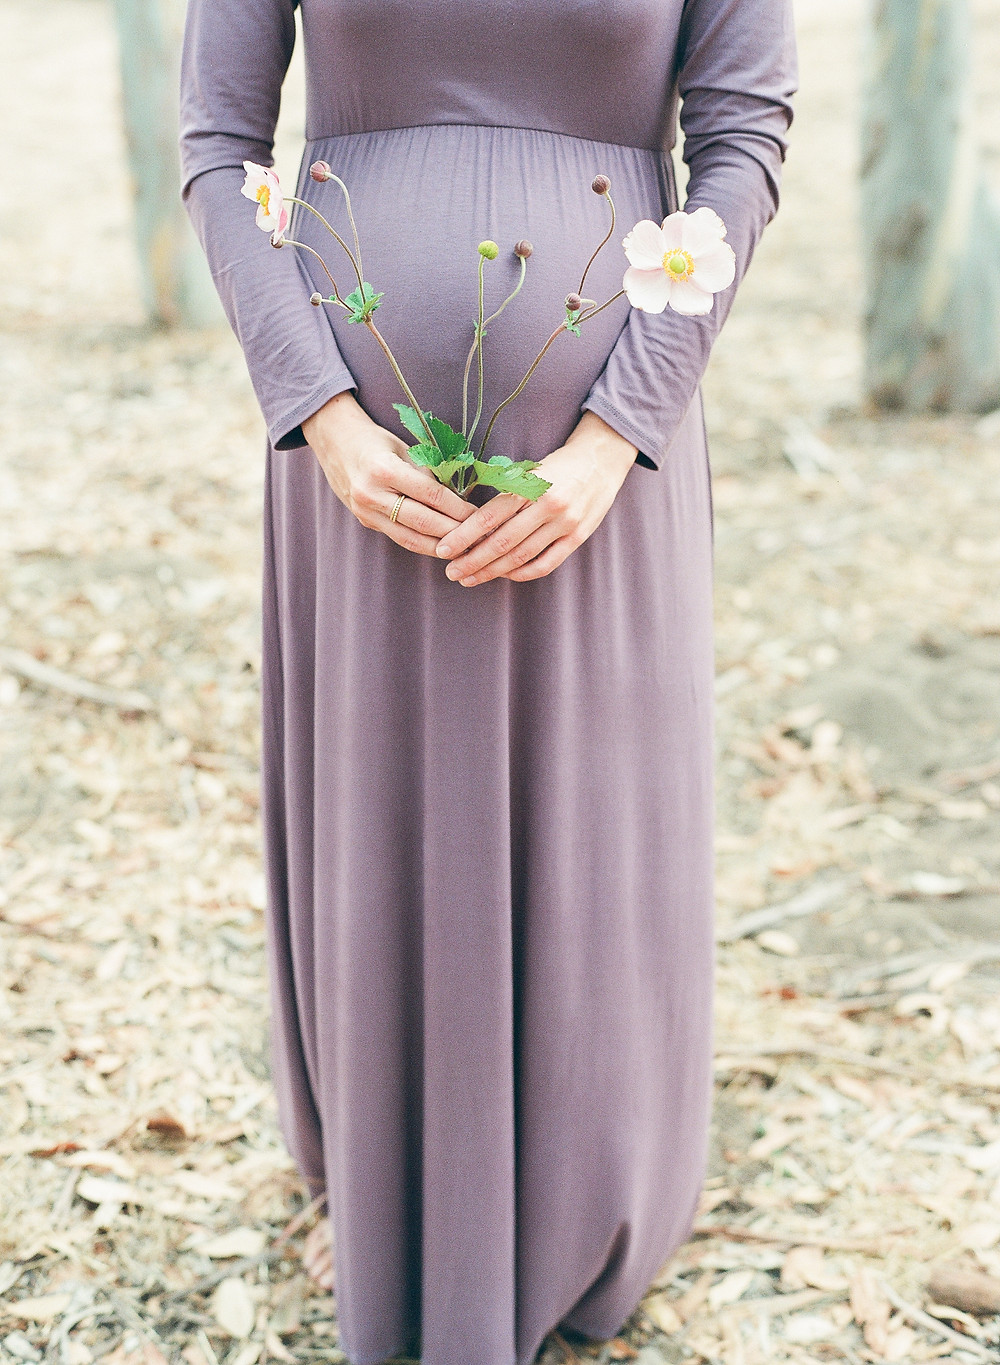 Photo of baby bump with woman holding flowers in front of belly